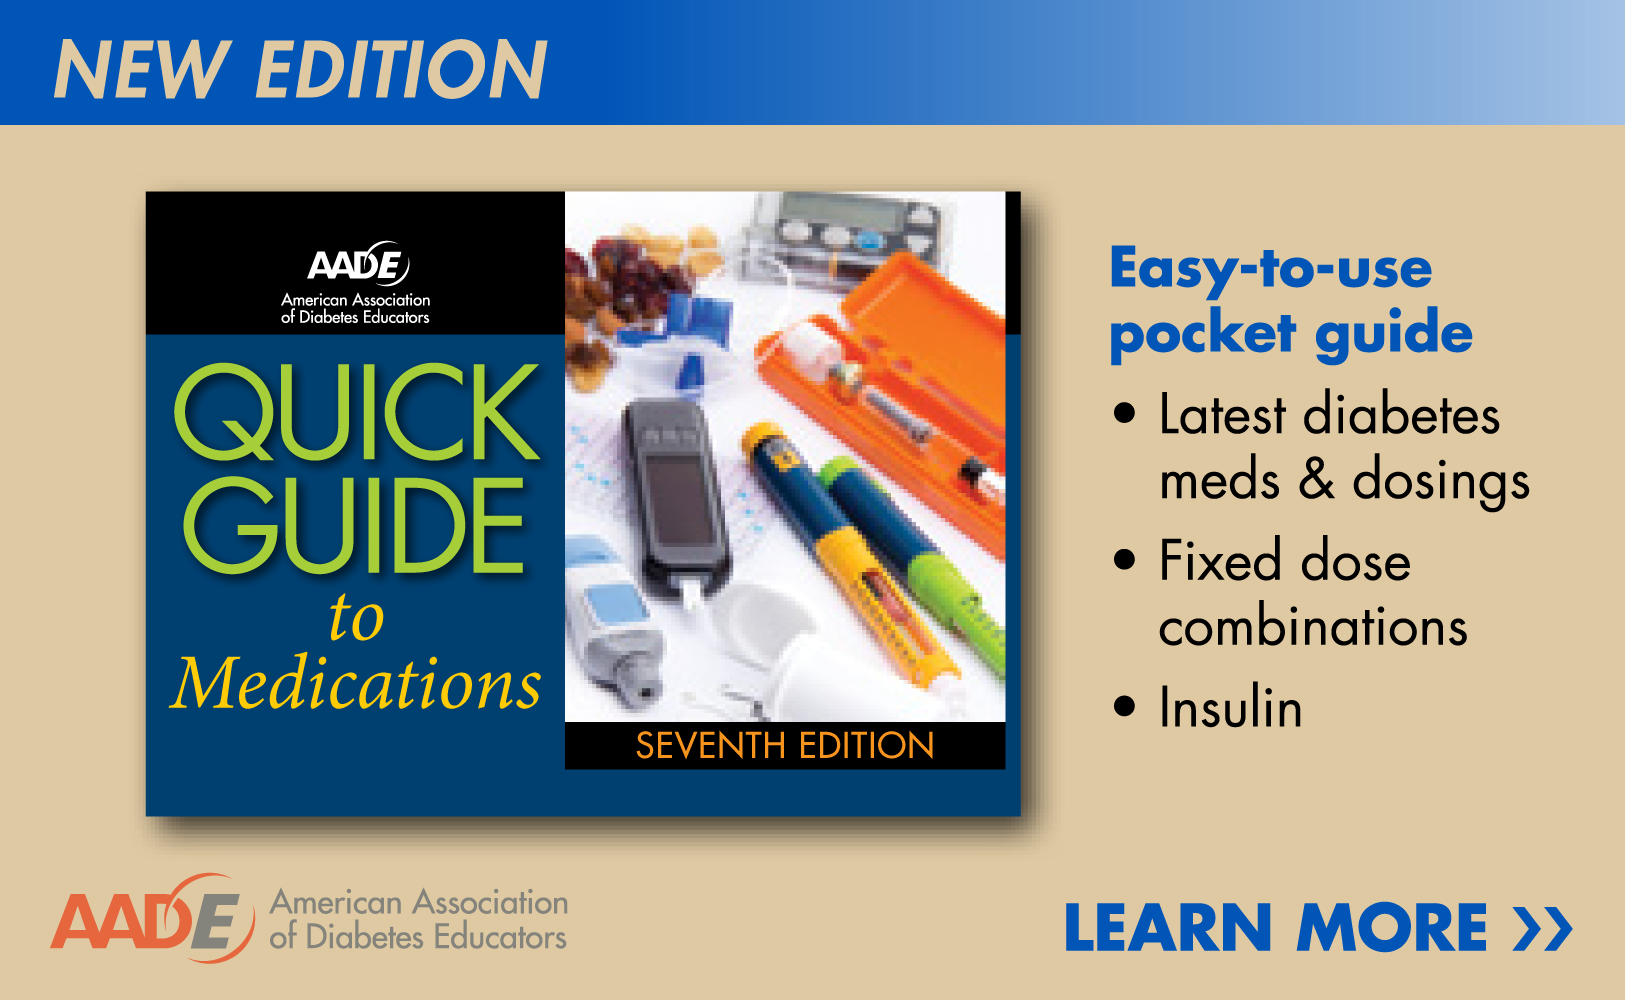 AADE-quick-guide-to-meds-ad-13-8-rev